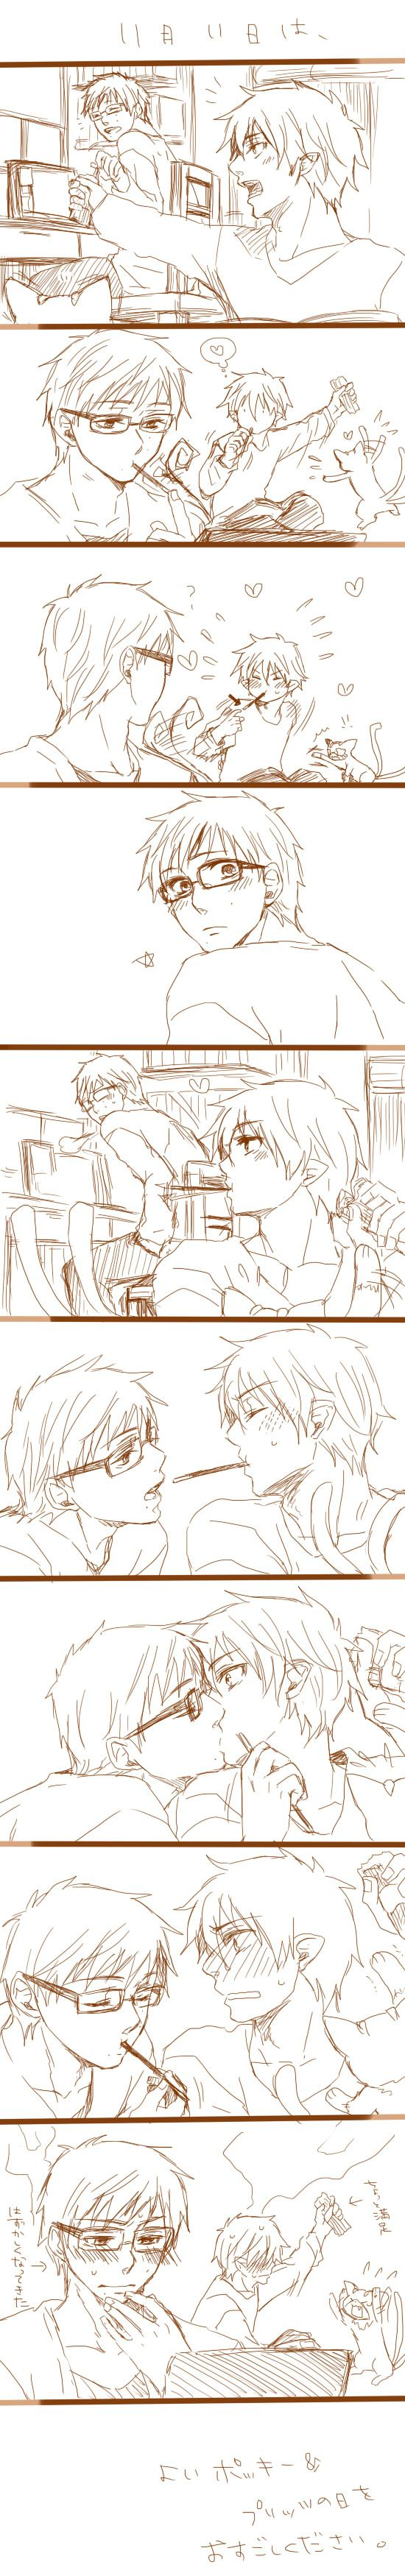 Tags: Blue Exorcist, ao no Exorcist, Anime, Chocolate, Pocky, Chair, Sweatdrop, Incest, Twincest